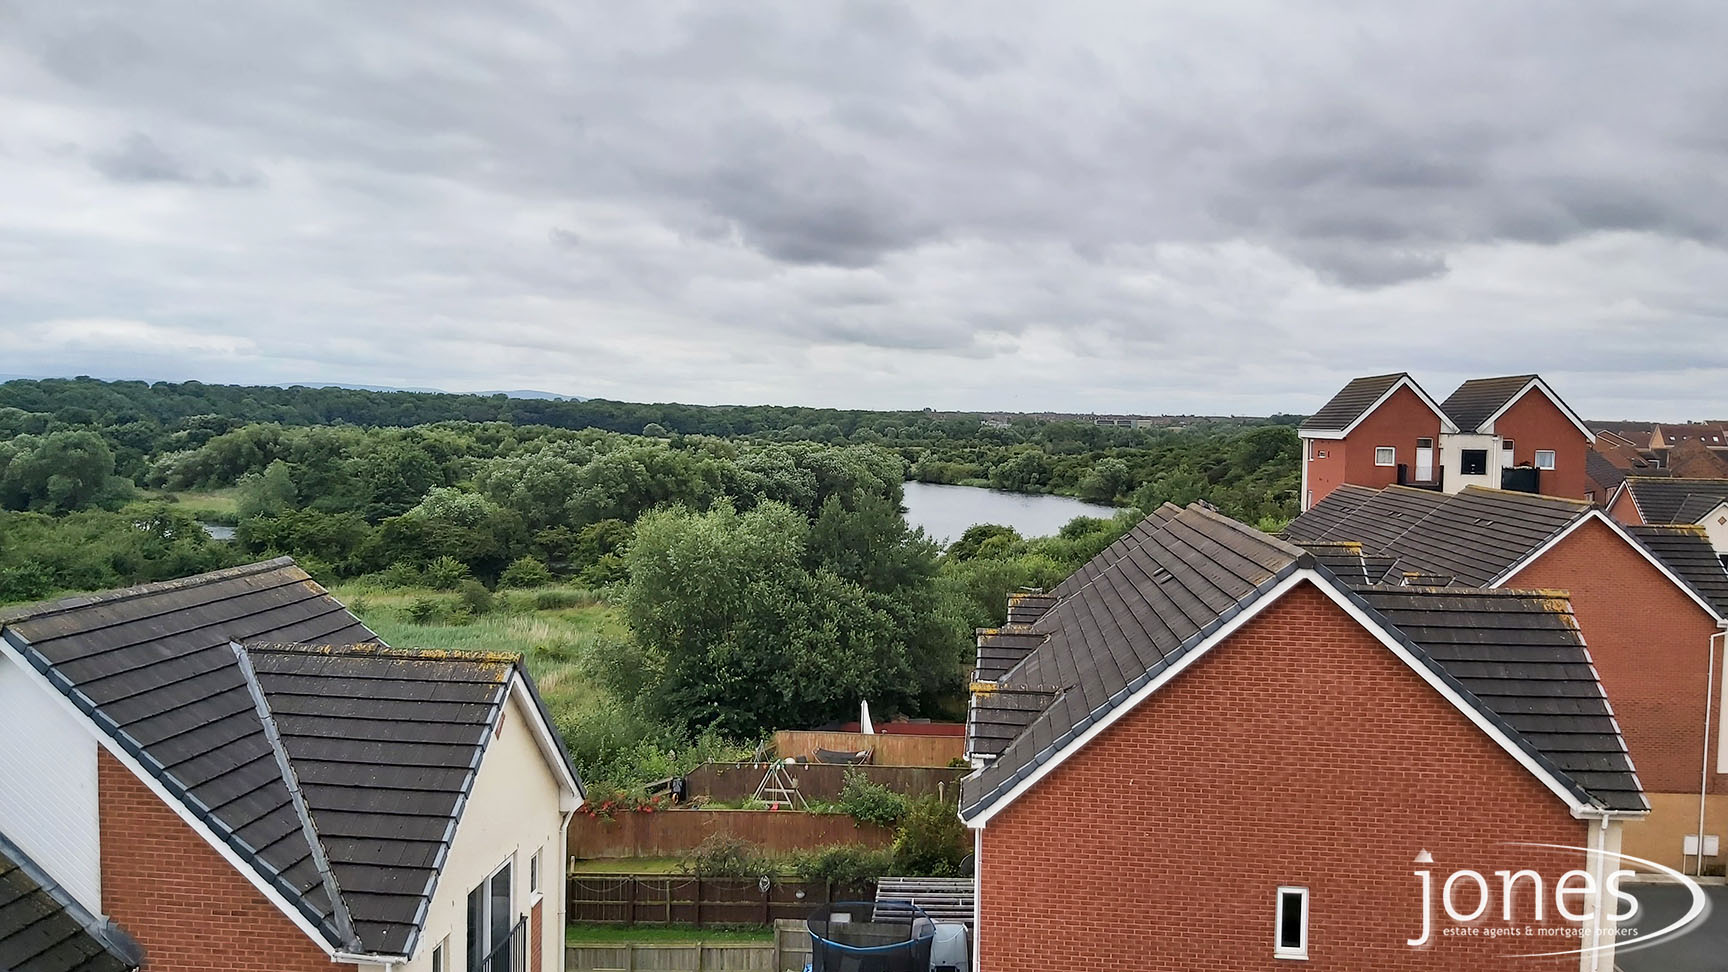 Home for Sale Let - Photo 12 Willow Sage Court, Stockton on Tees, TS18 3UQ